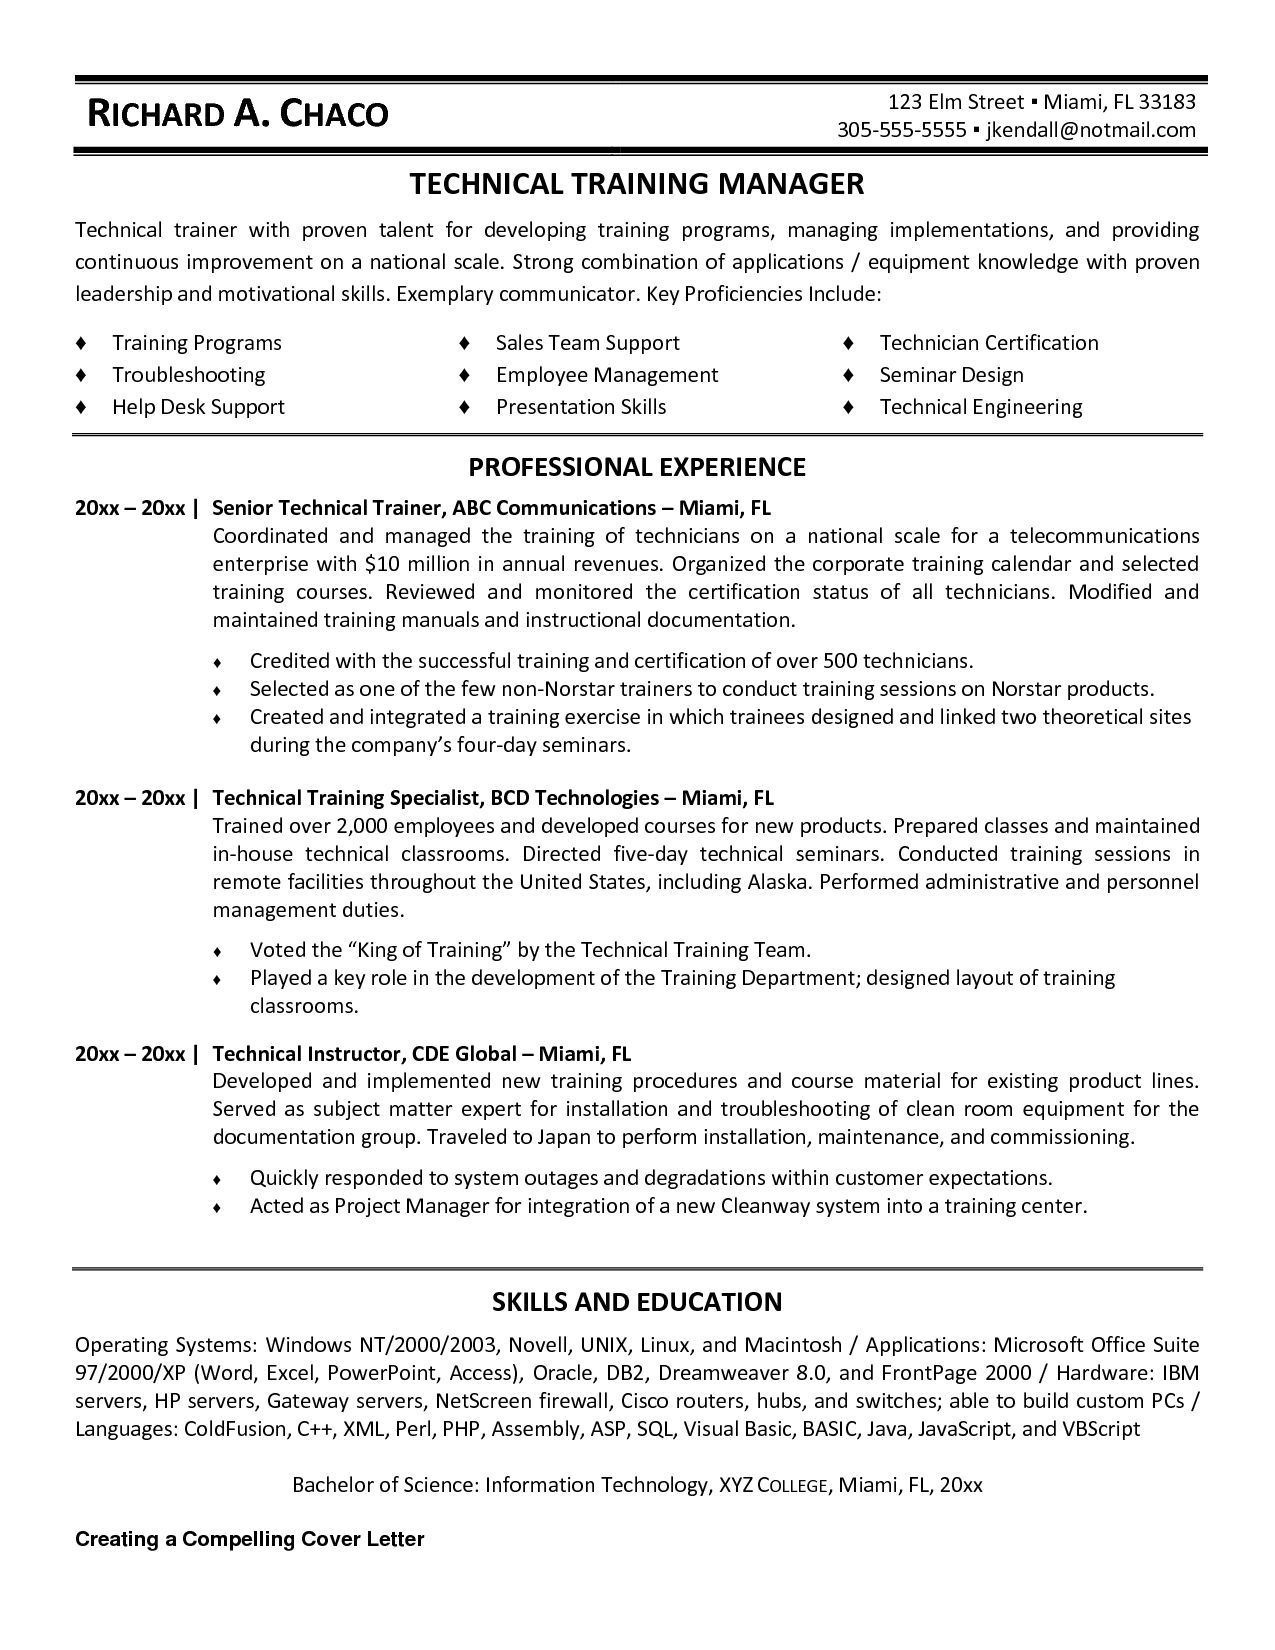 Personal Trainer Resume Best Personal Trainer Resume Objective Personal Trainer Resume Sample